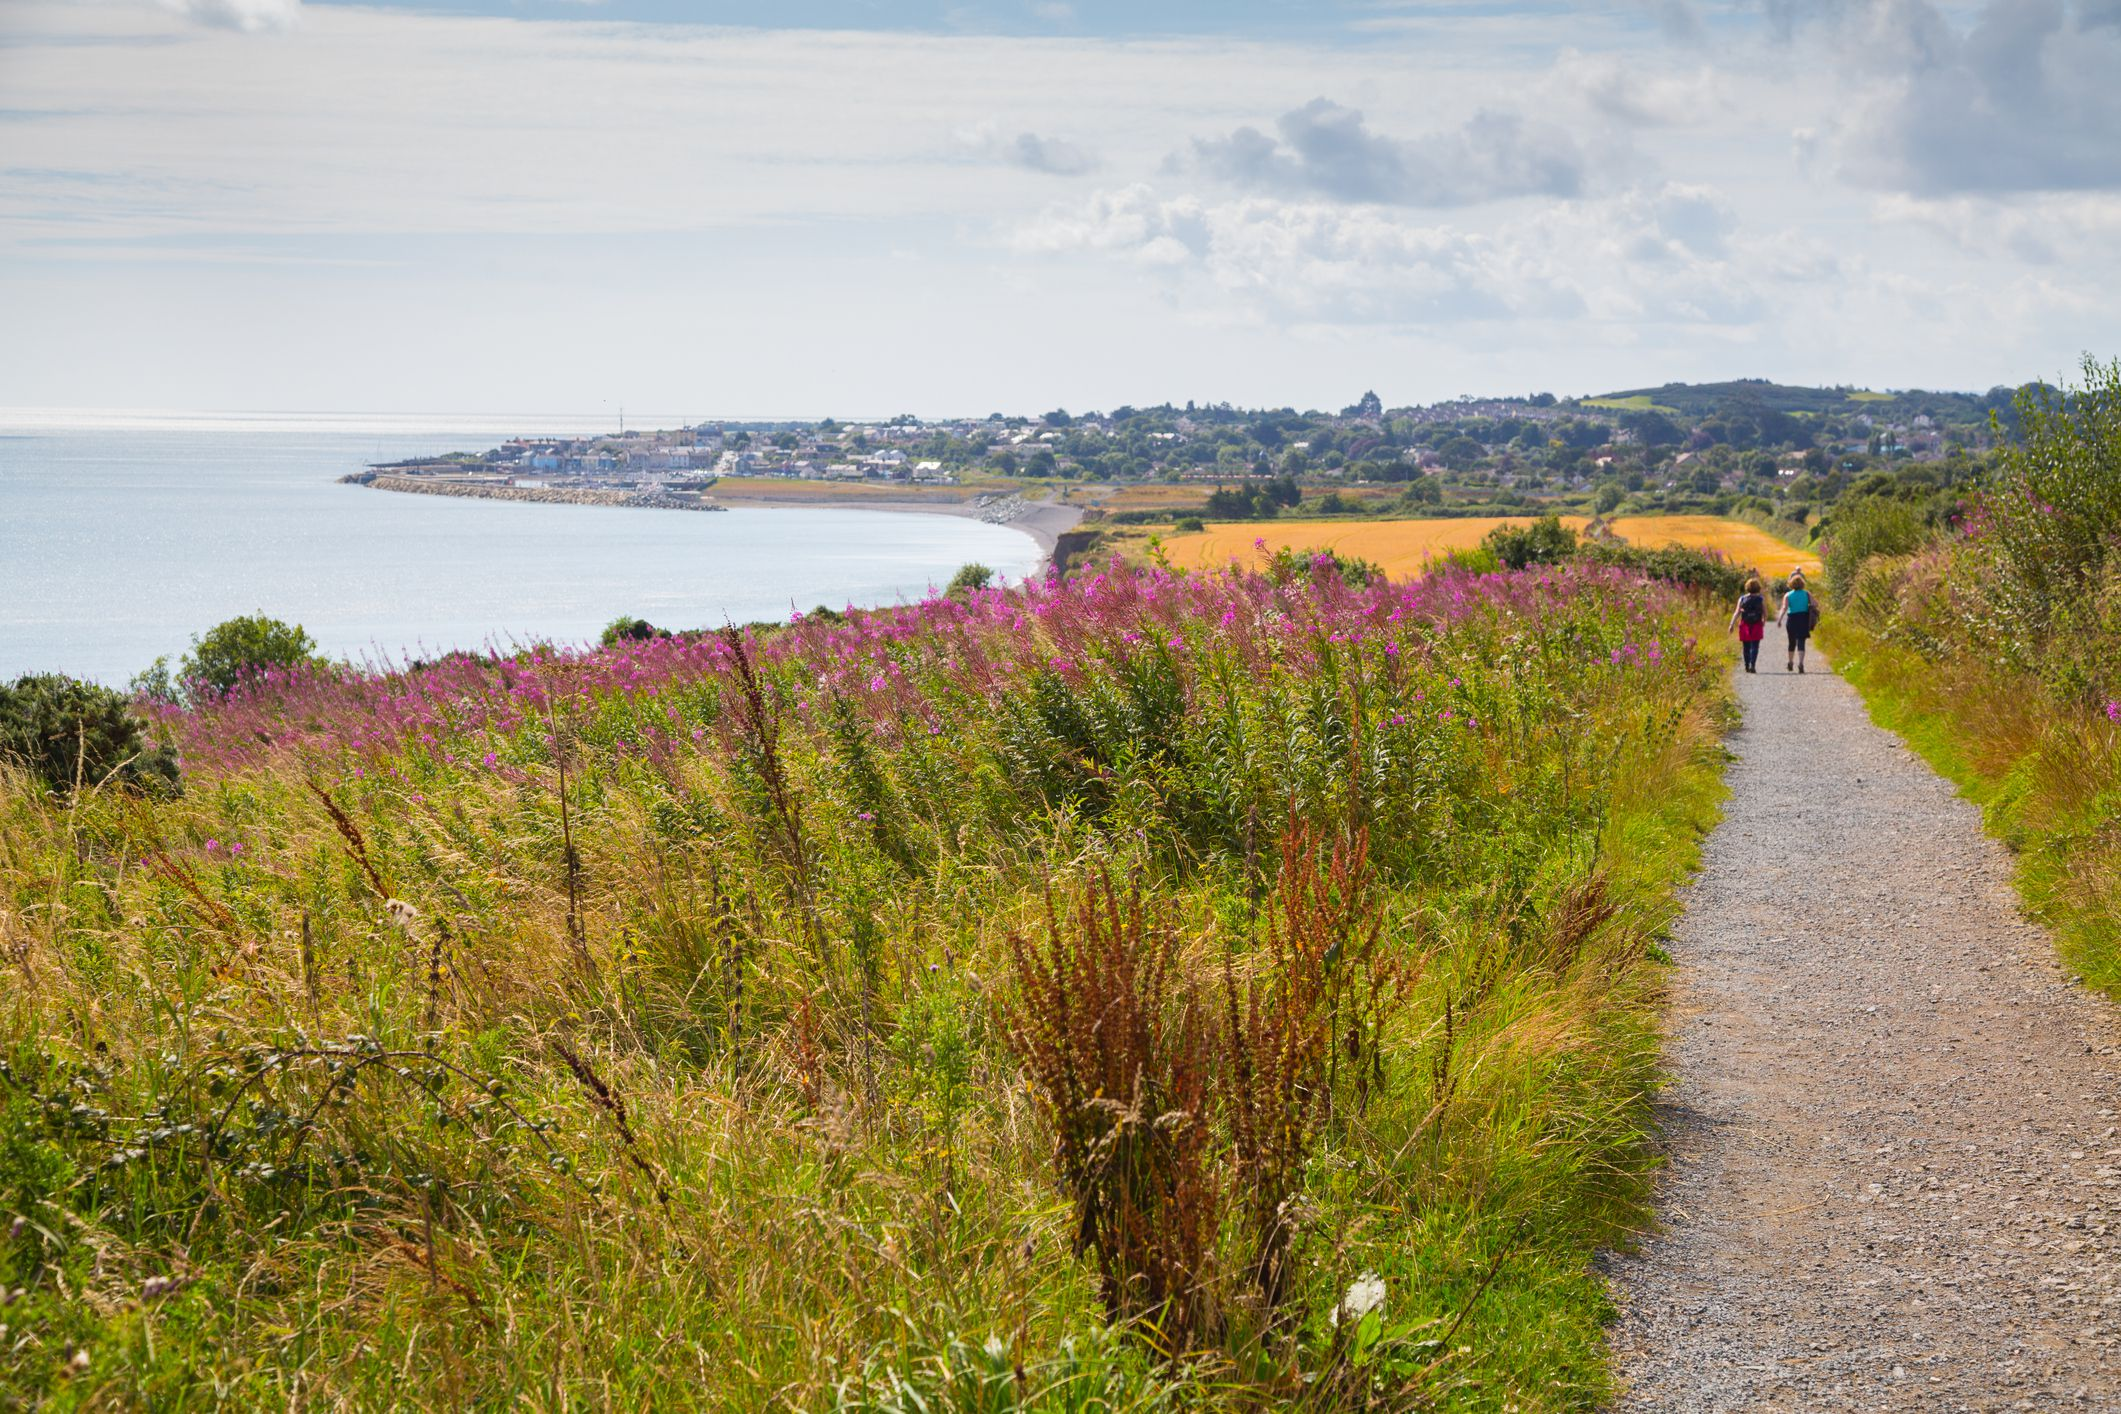 Walking trail at Greystones, Co. Wicklow